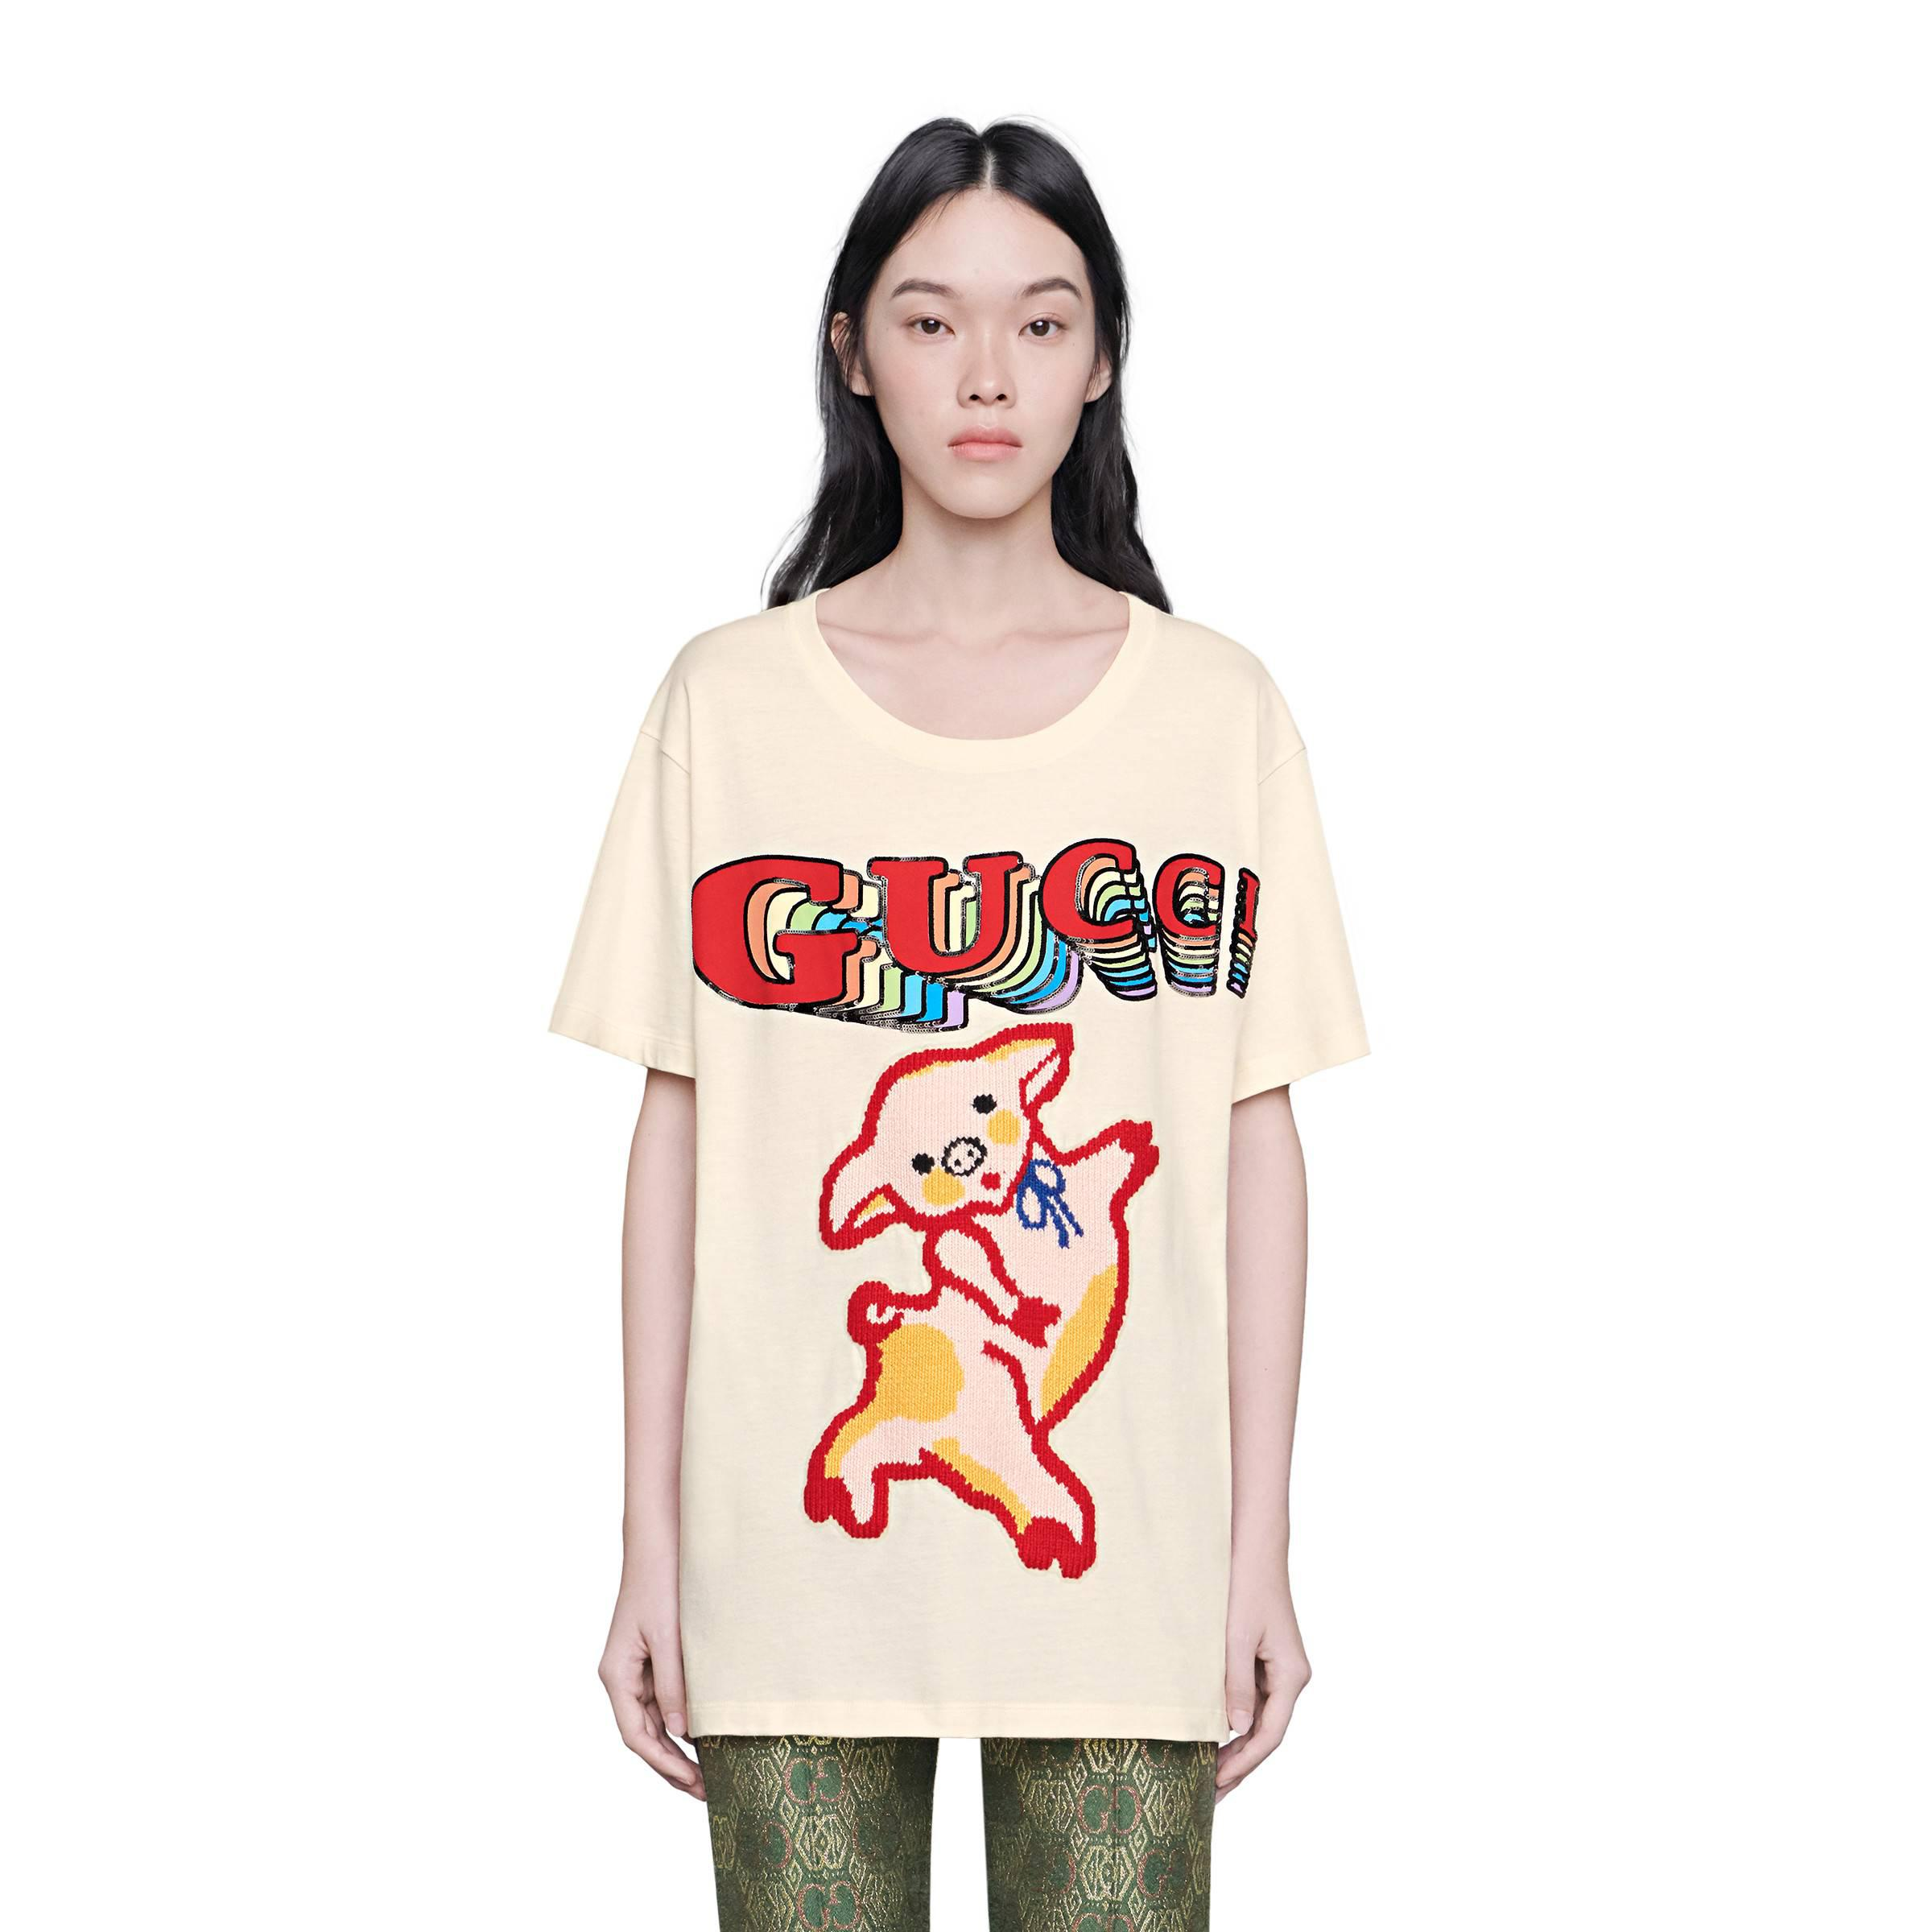 5fbf8b1a Gucci Women's Oversize Cotton T-shirt With Piglet in White - Lyst